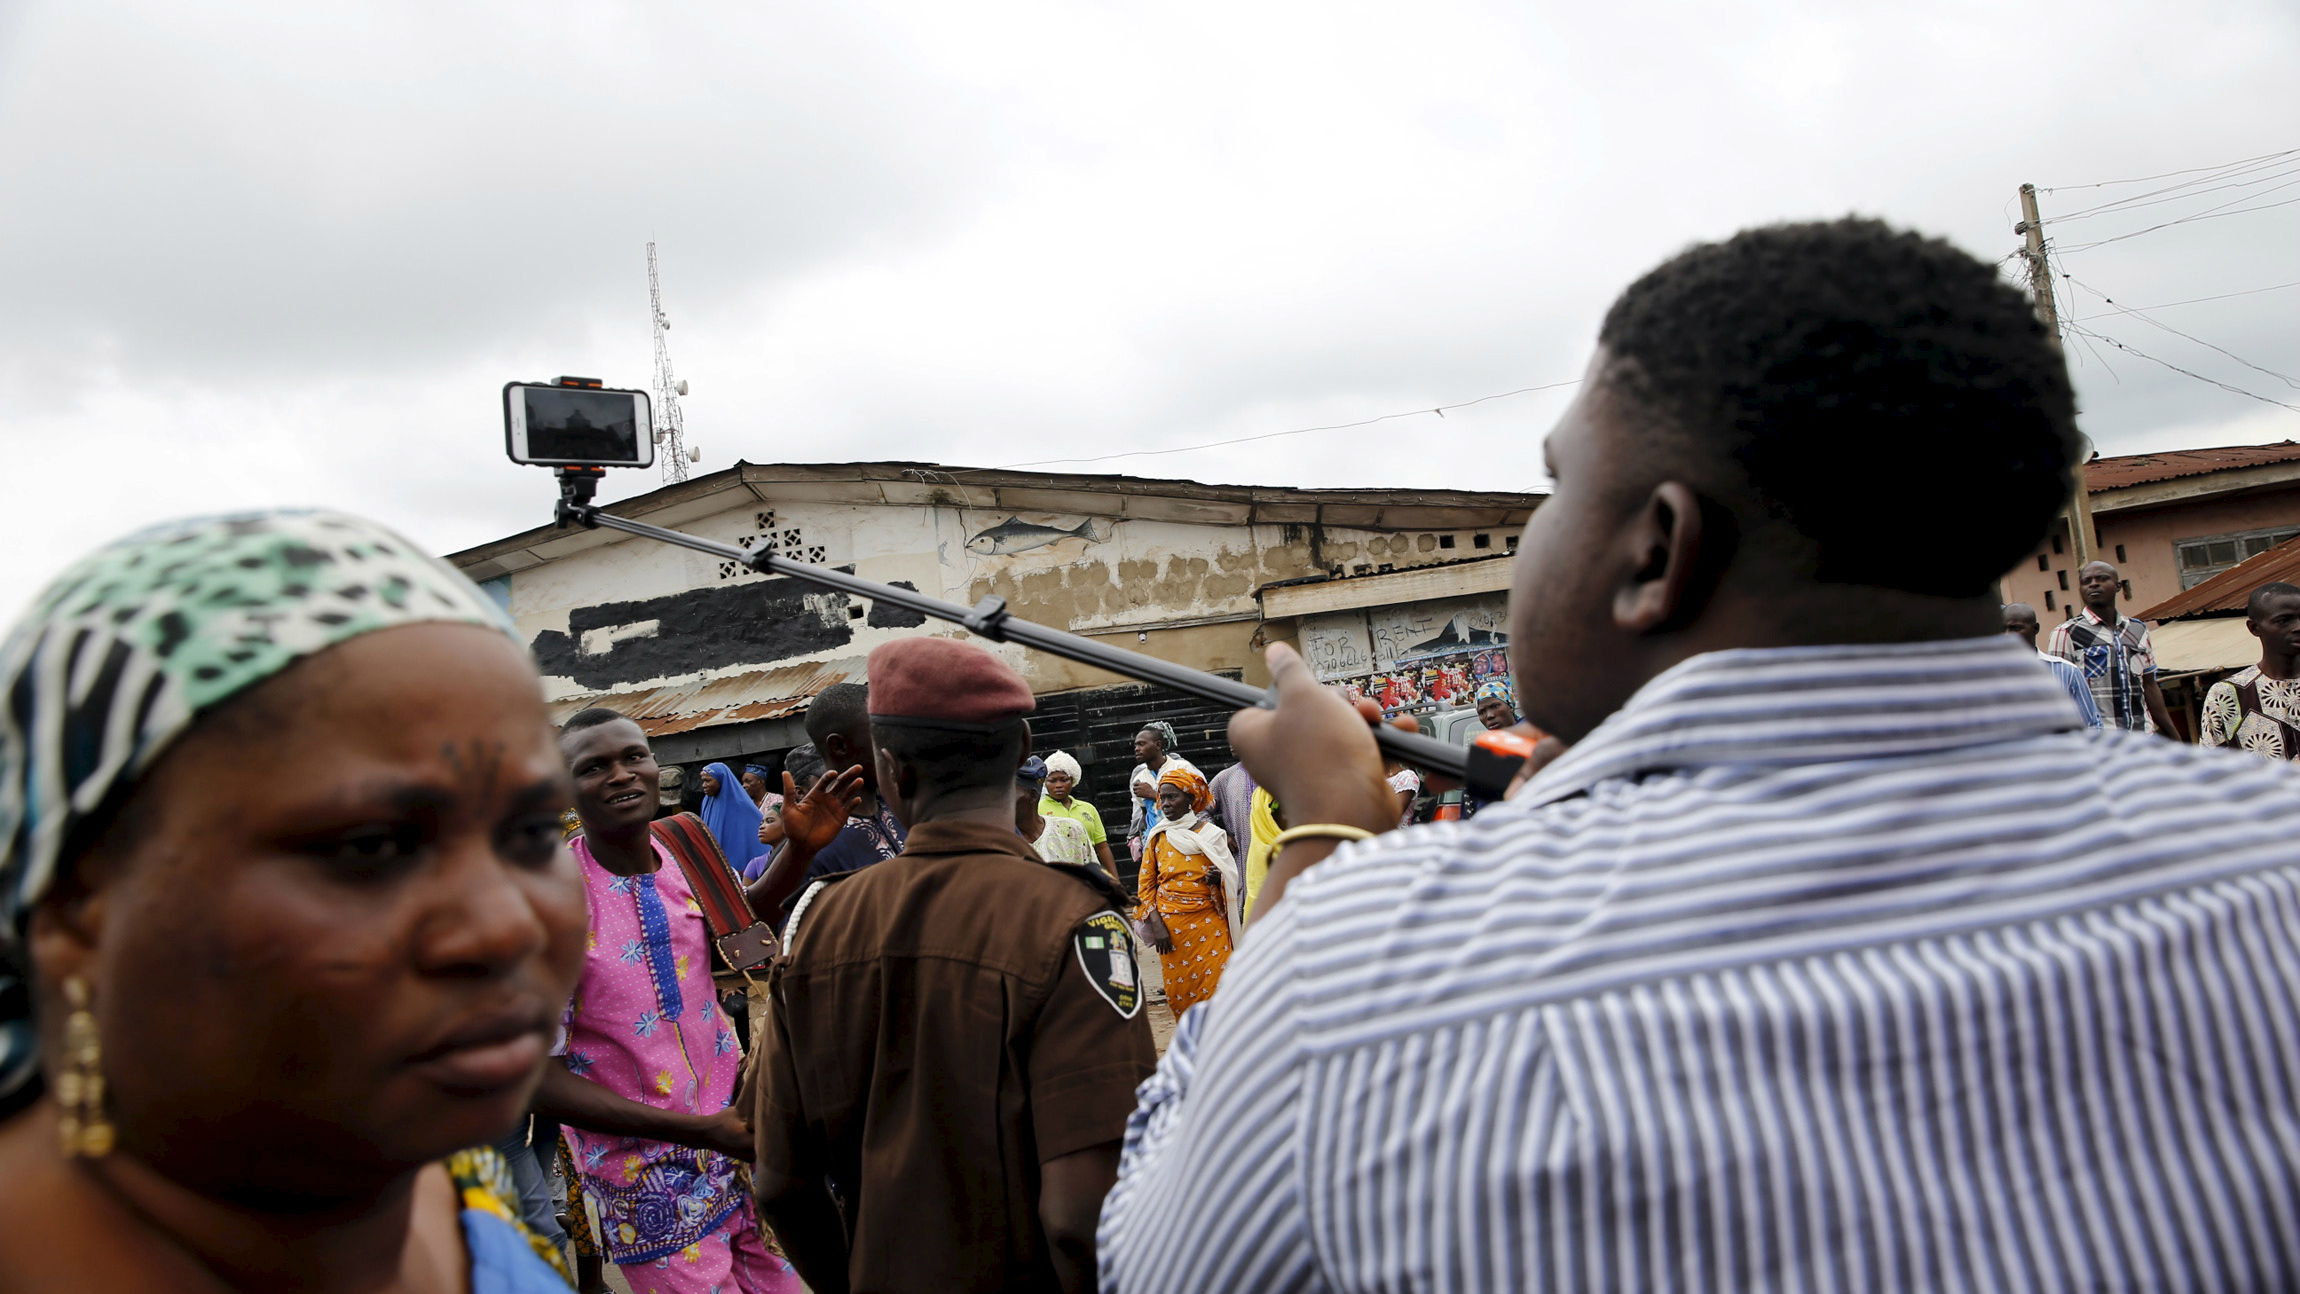 A man uses a selfie stick to film video at the start of the annual Osun festival in Osogbo in Nigeria's southwest, August 10, 2015. REUTERS/Akintunde Akinleye